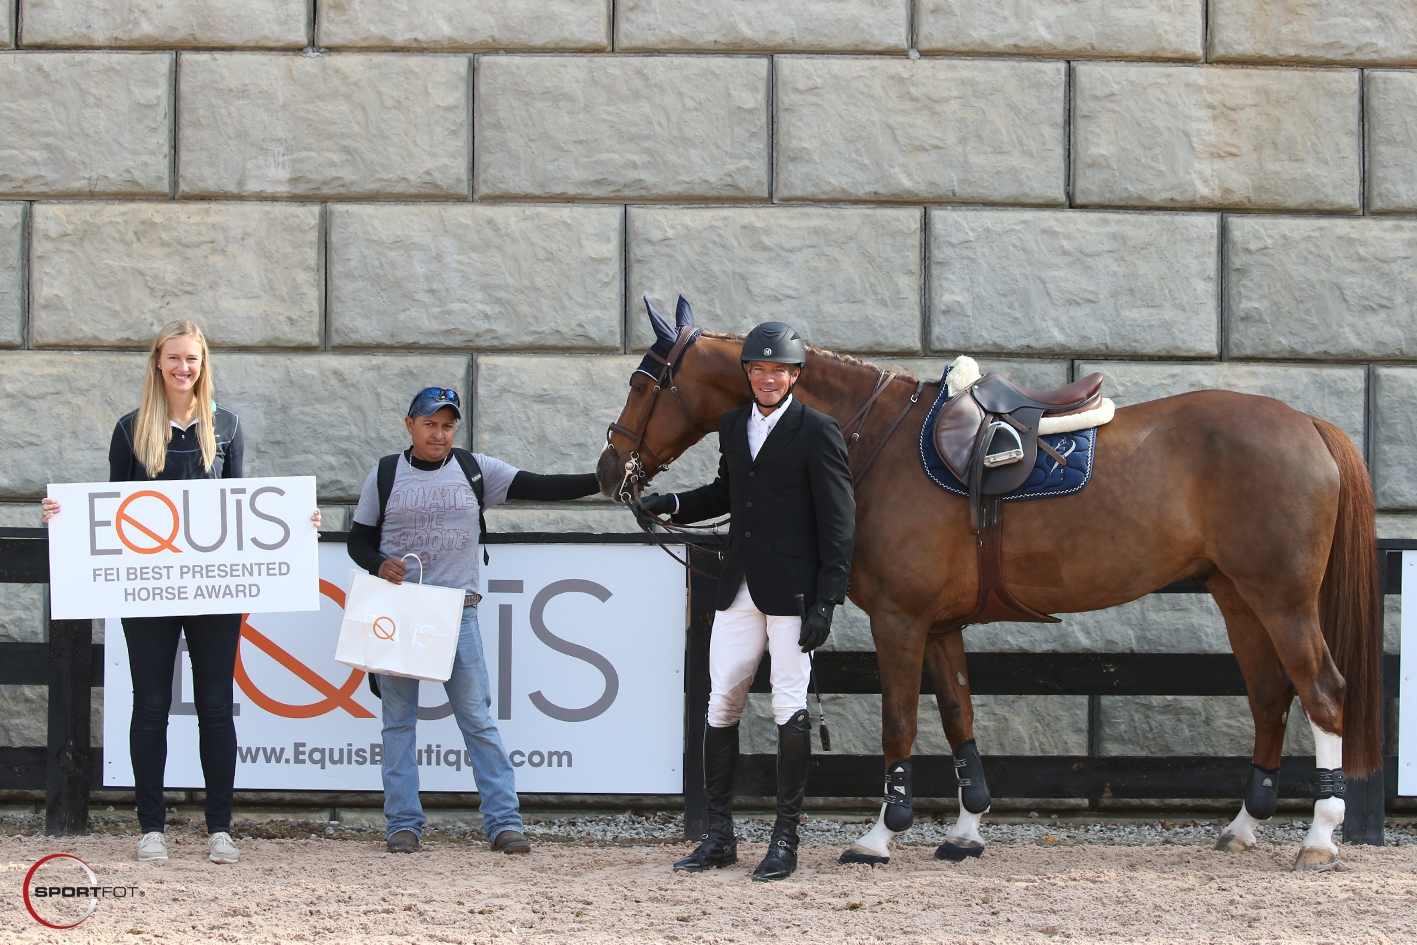 Basje Earns Equis Boutique Best Presented Horse Award at